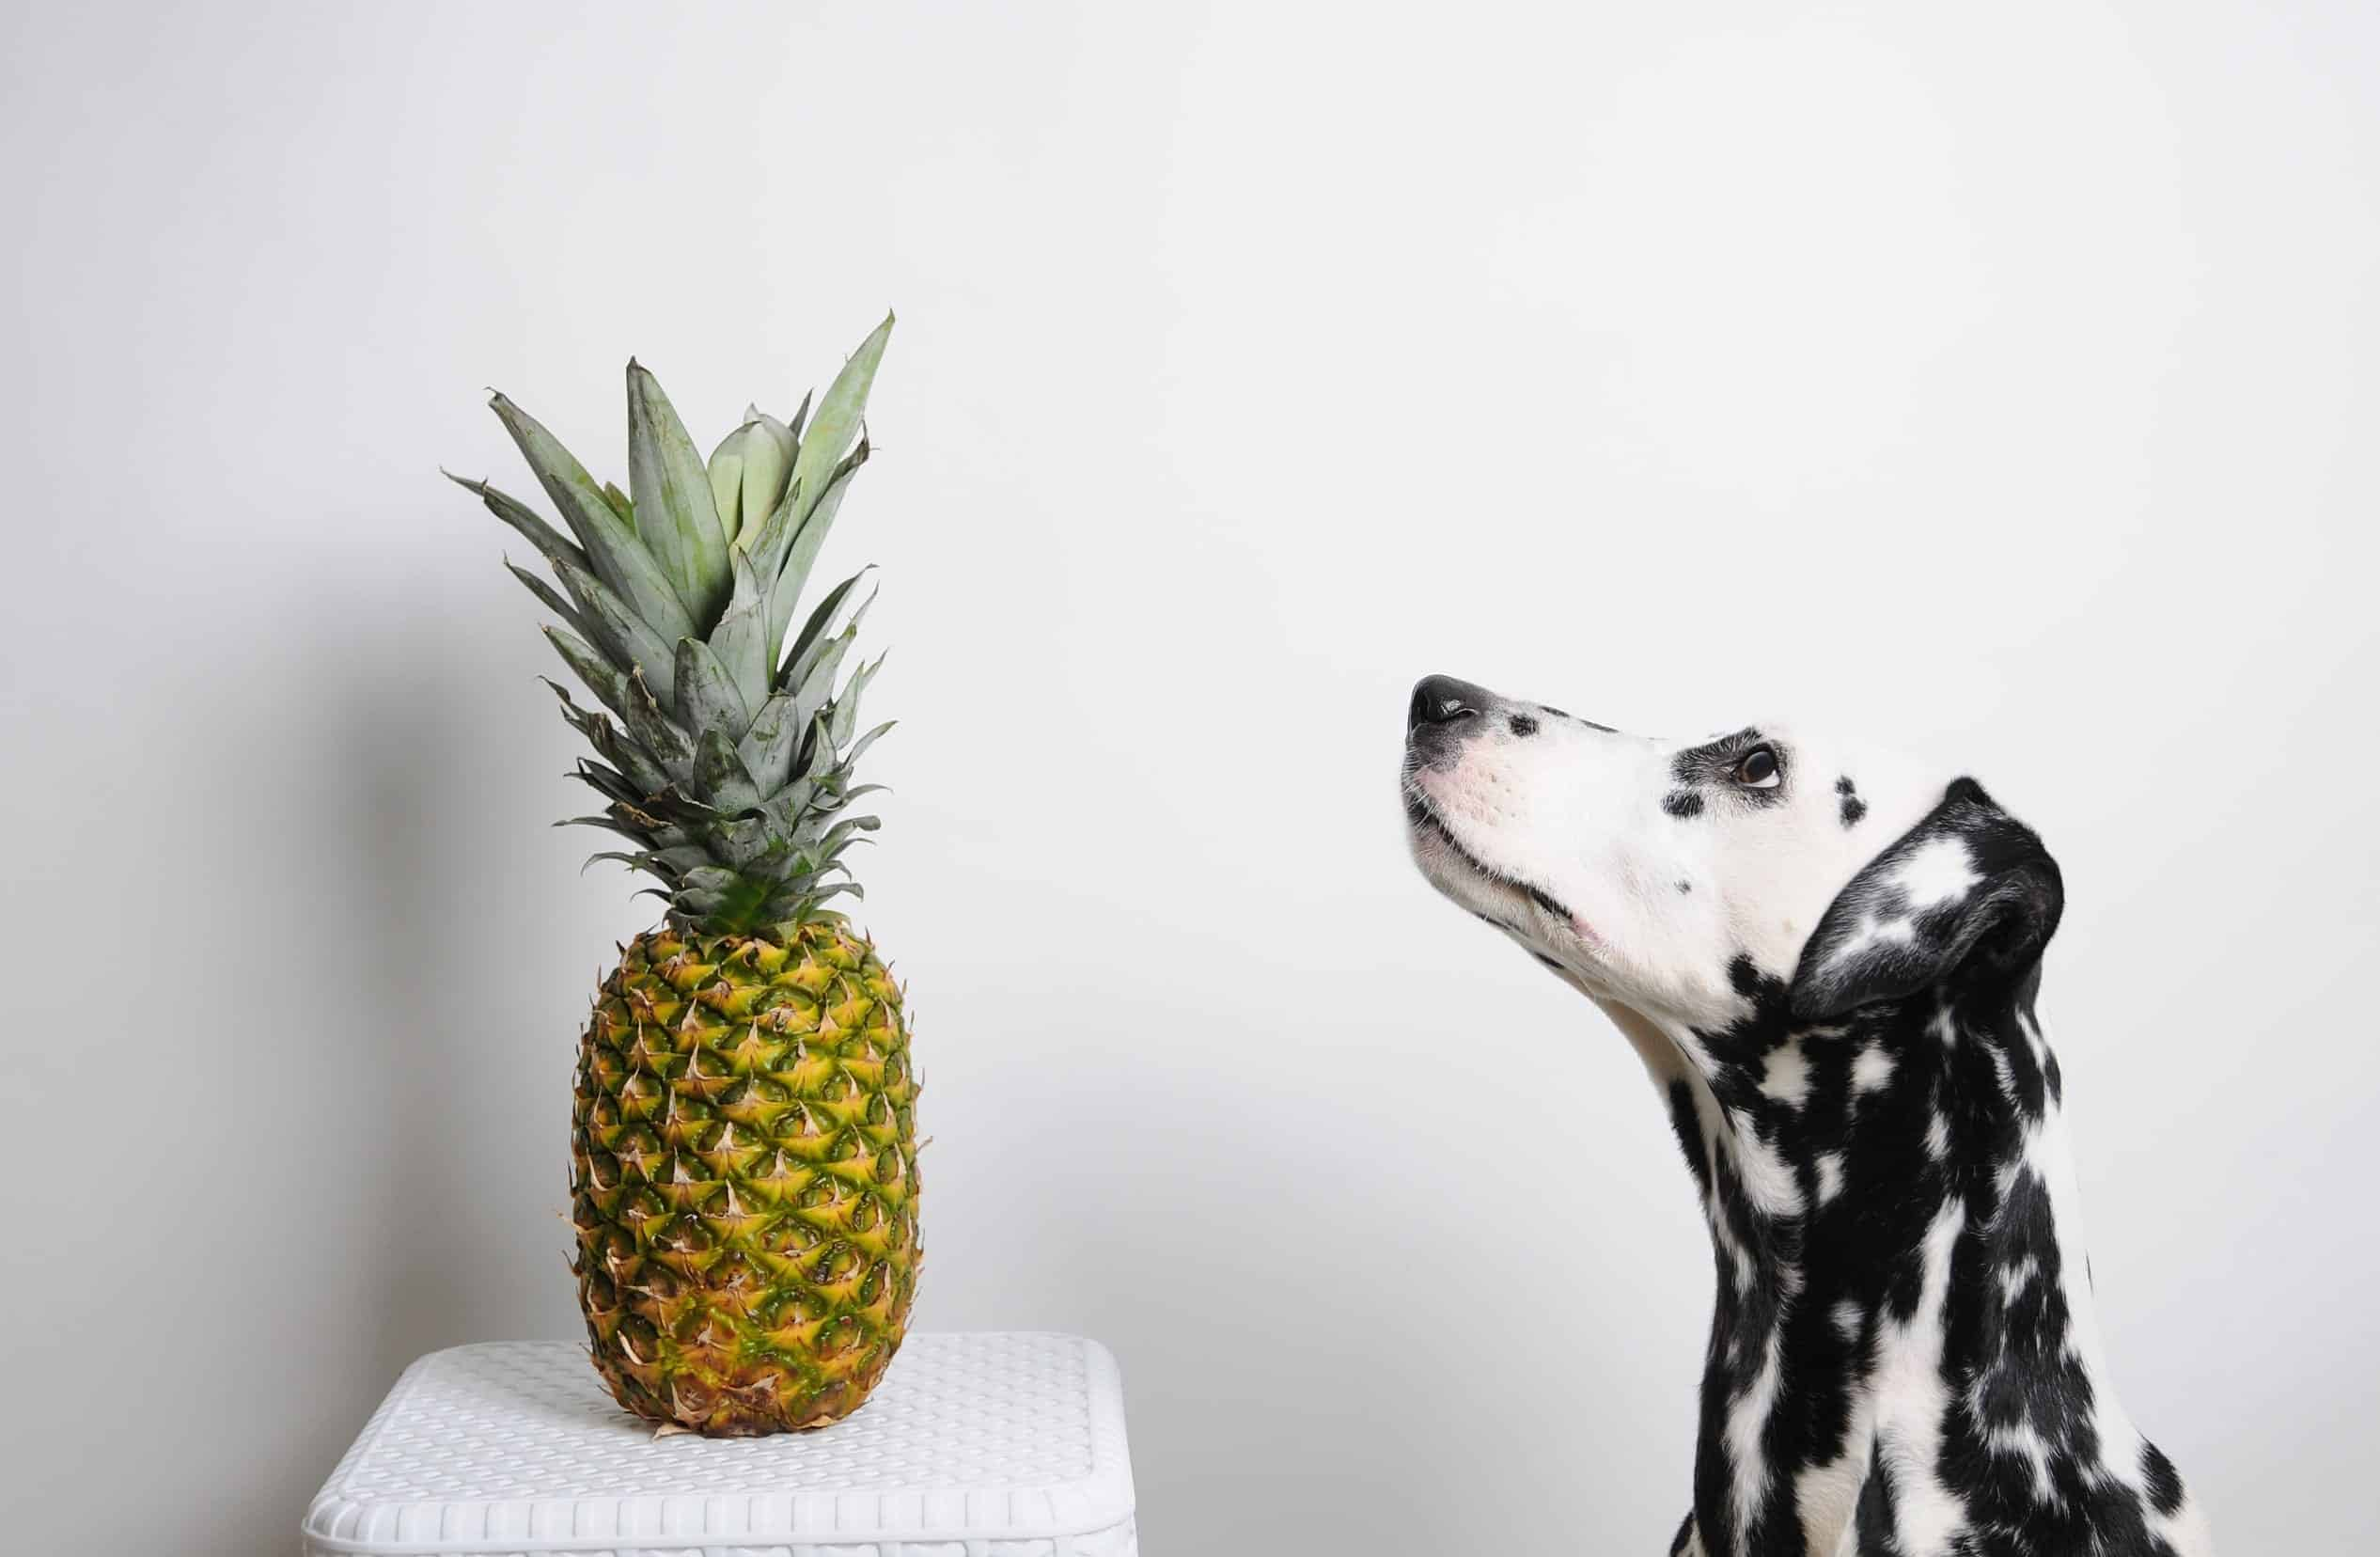 Human Food For Dogs: Can Dogs Eat Pineapple?